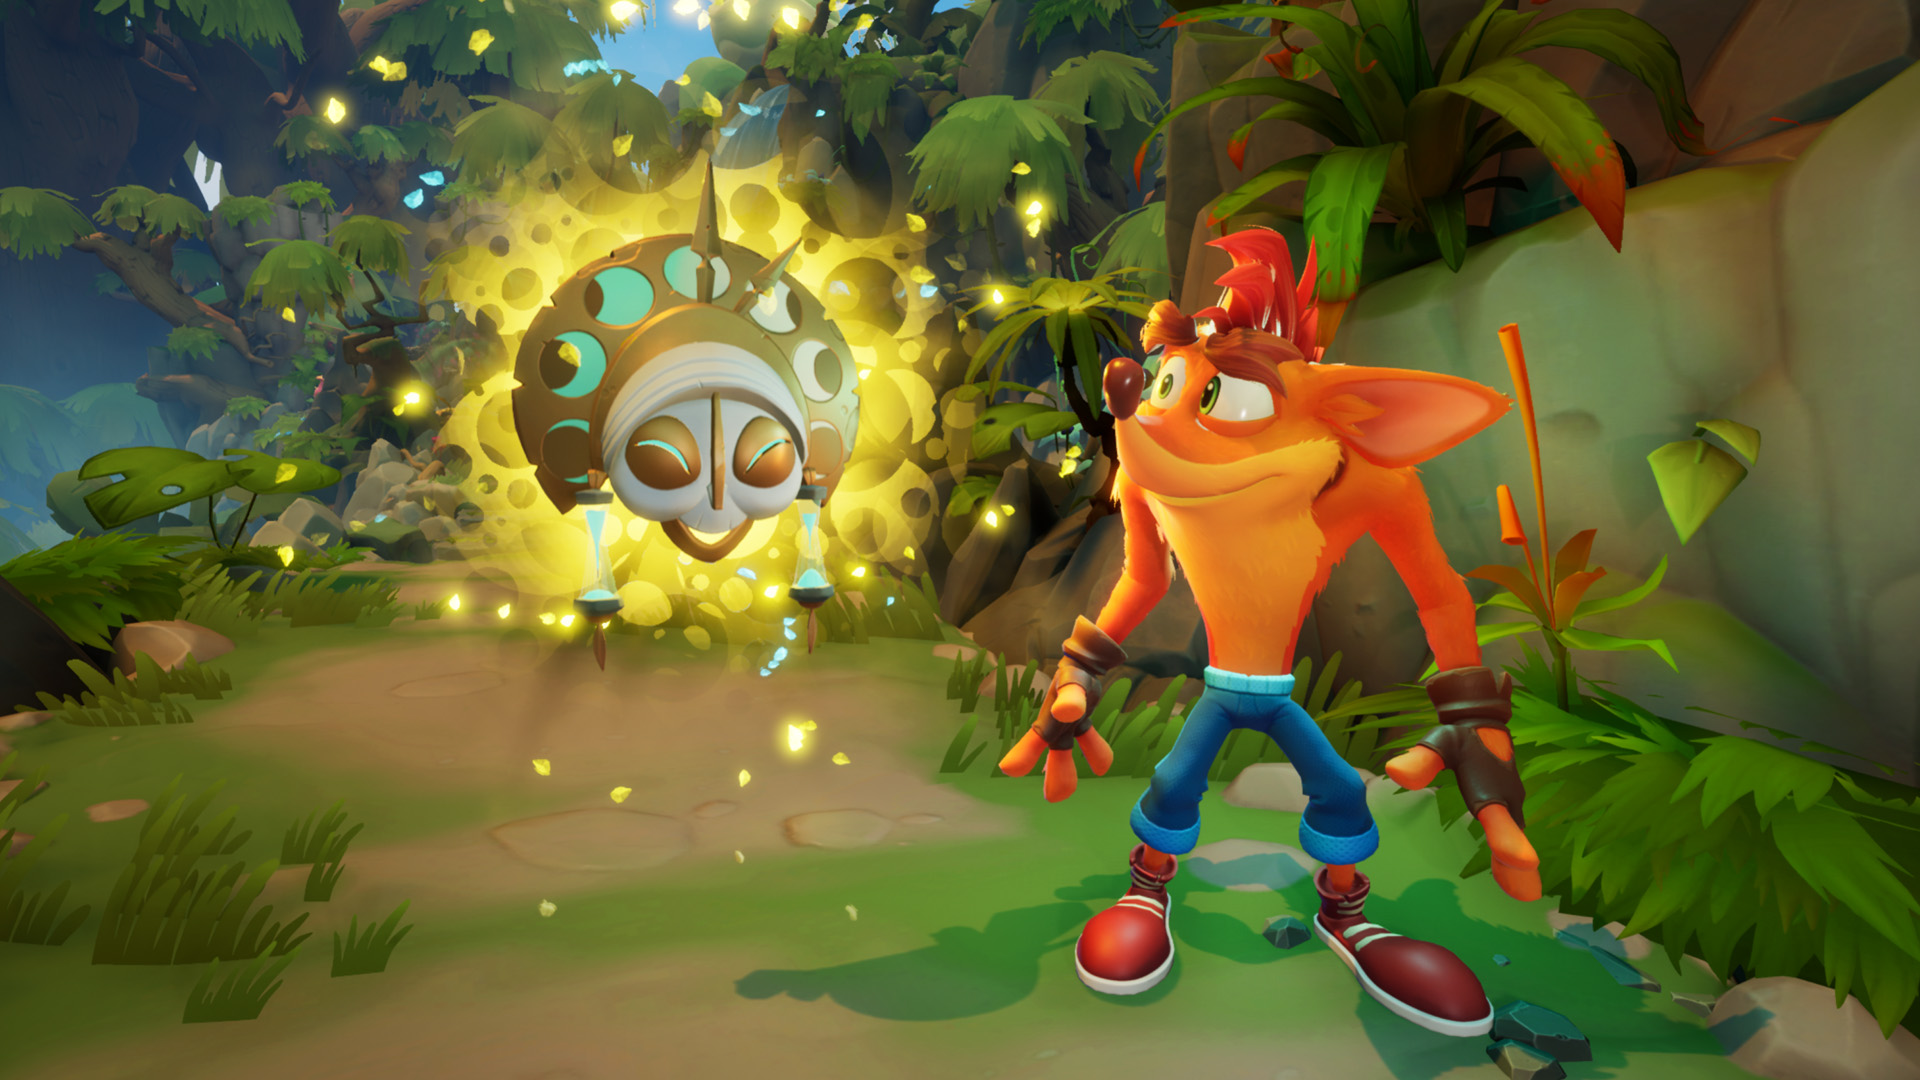 Crash Bandicoot 4: It's About Time demo is coming next week | GamesRadar+